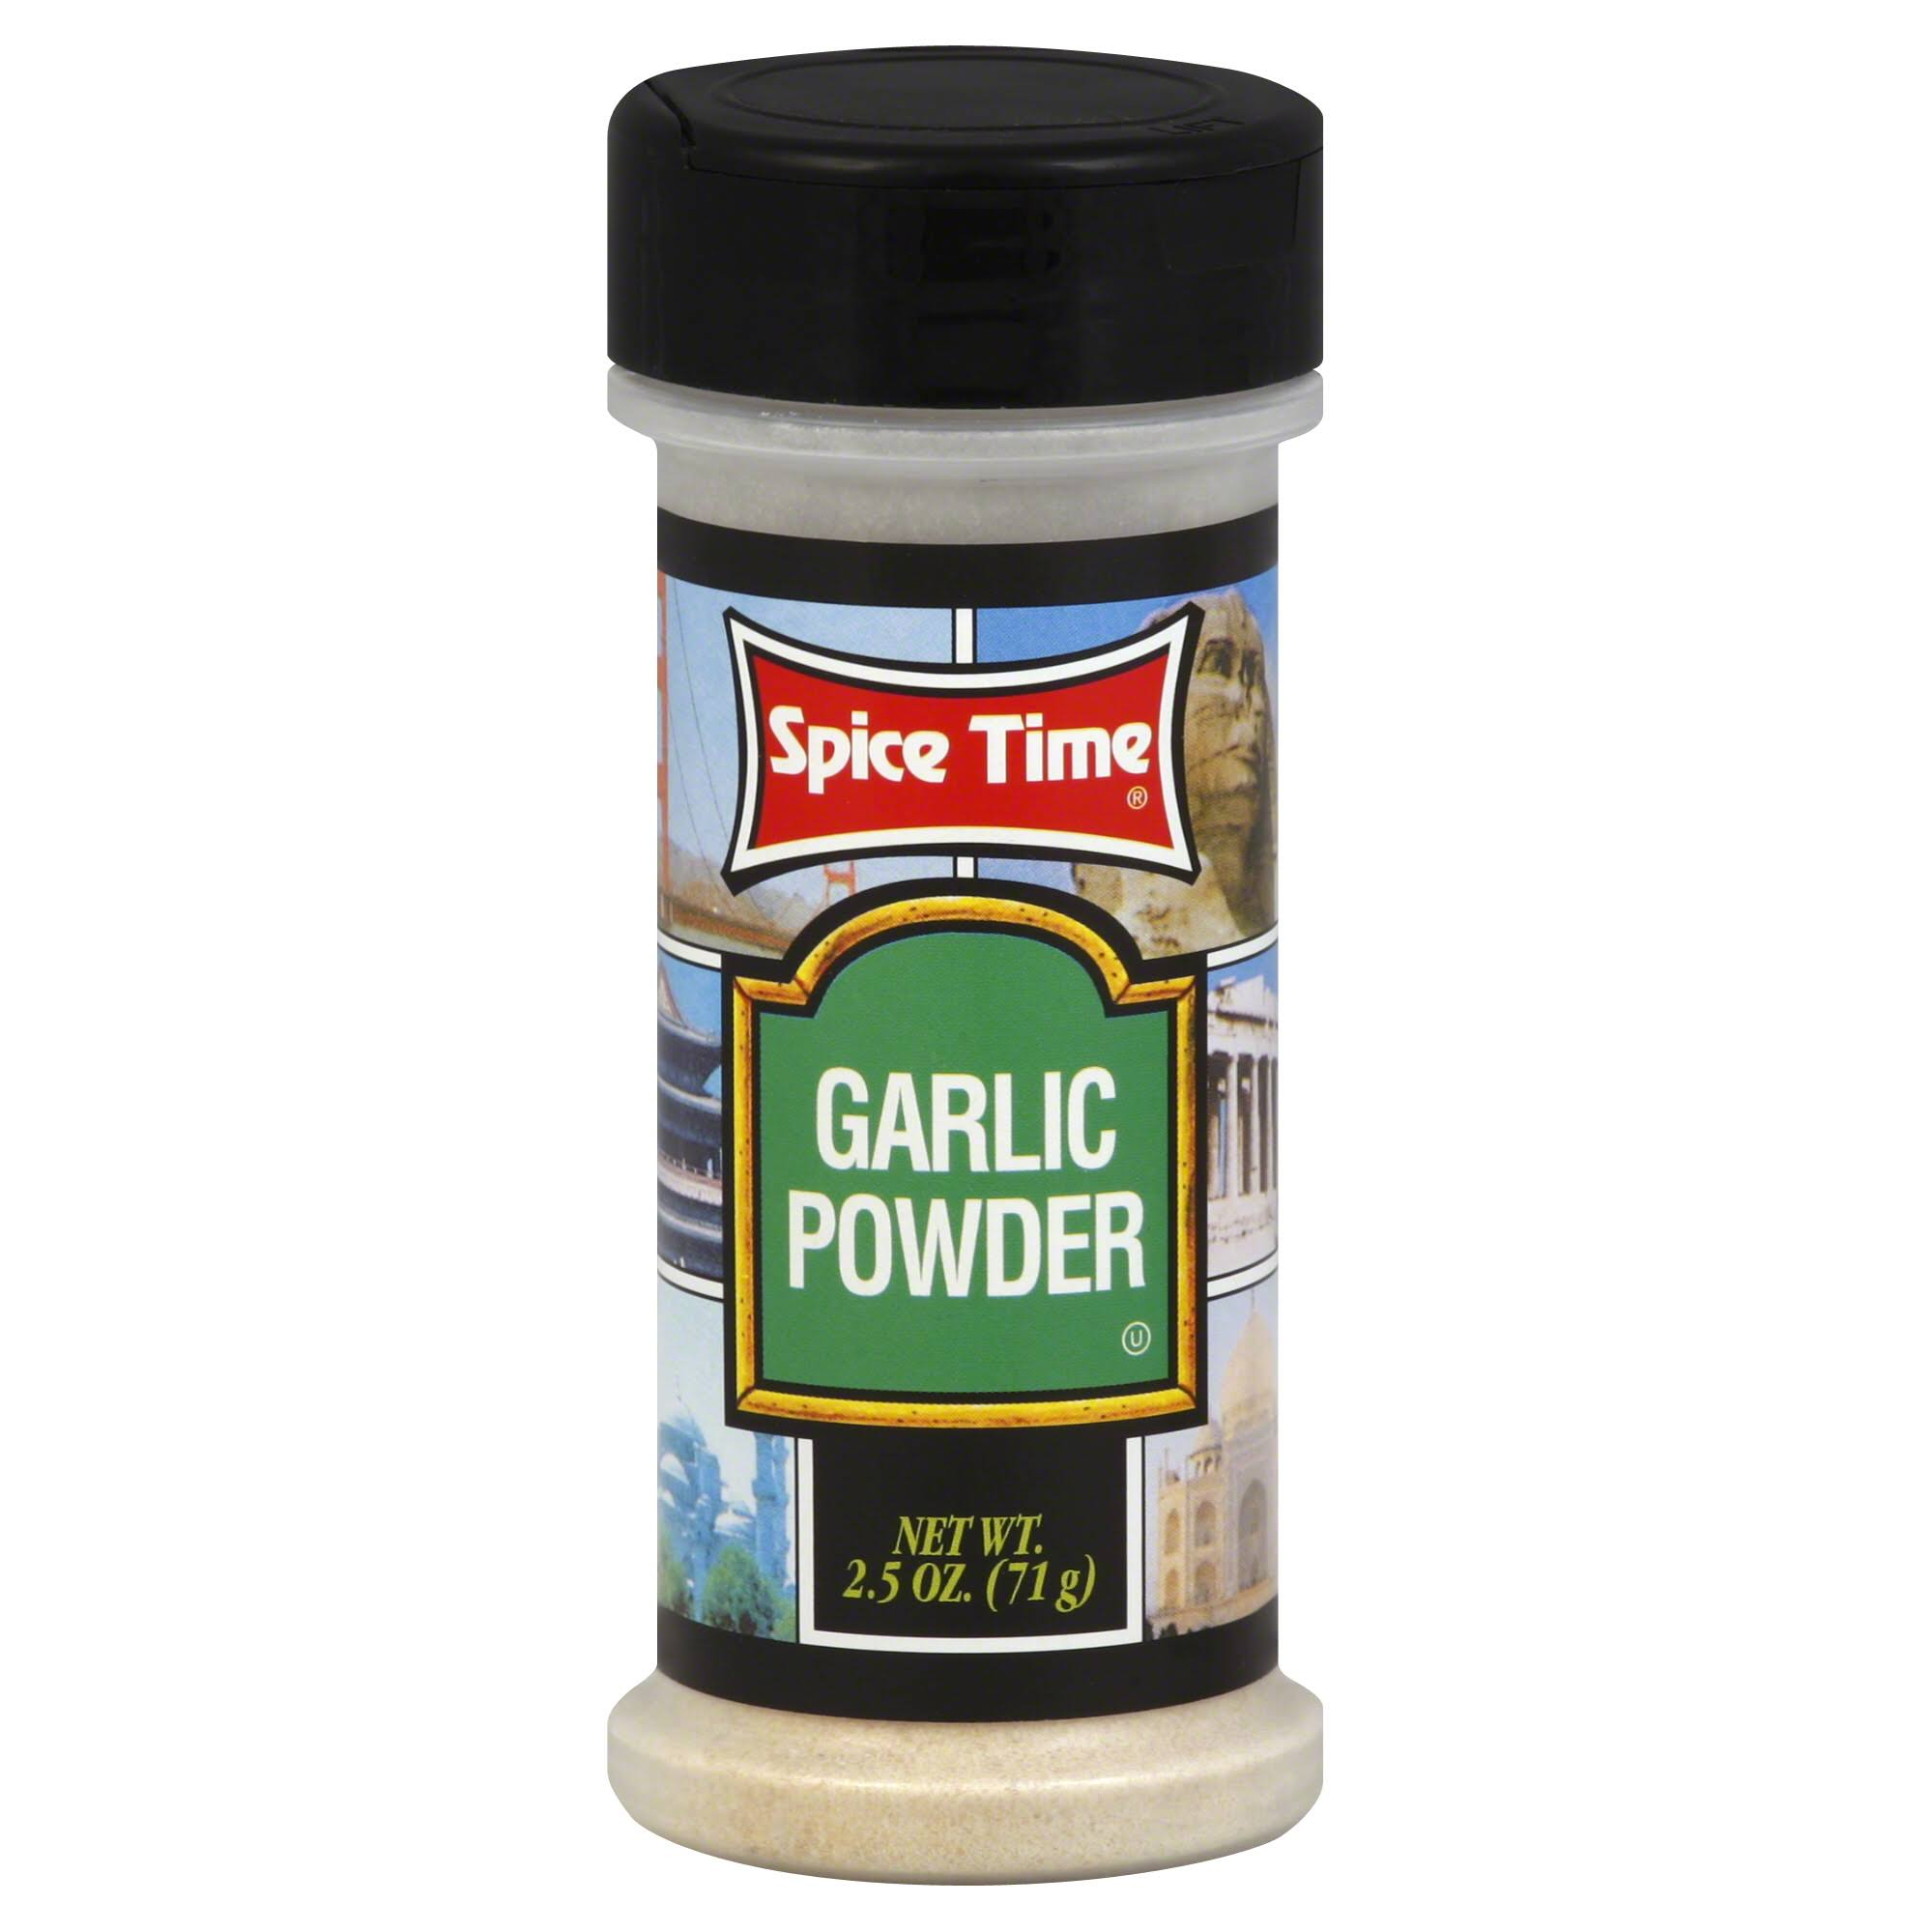 Spice Time Garlic Powder - 2.5 oz